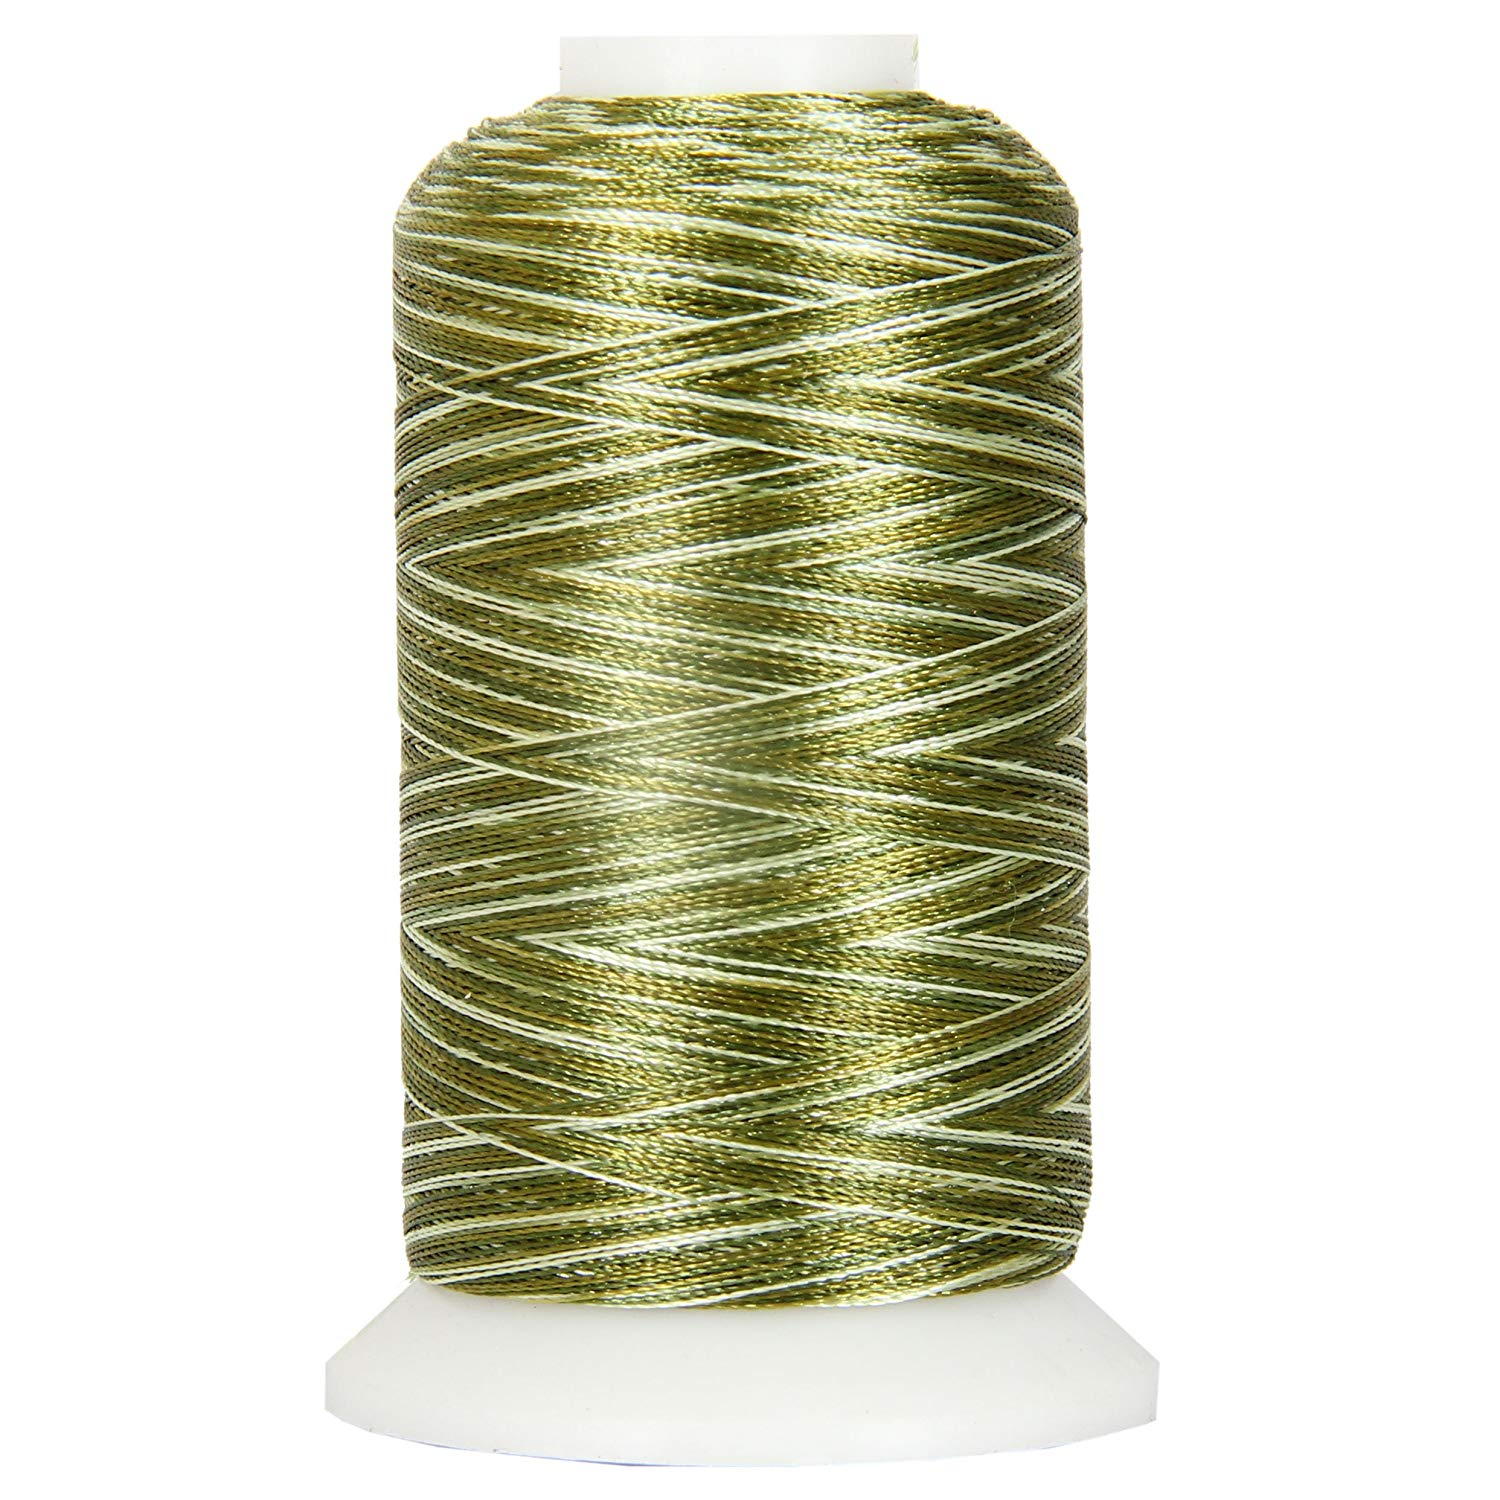 Threadart Variegated Polyester Embroidery Thread - 40wt - 1000m - 25 Colors Available - No. 2 - Patriotic